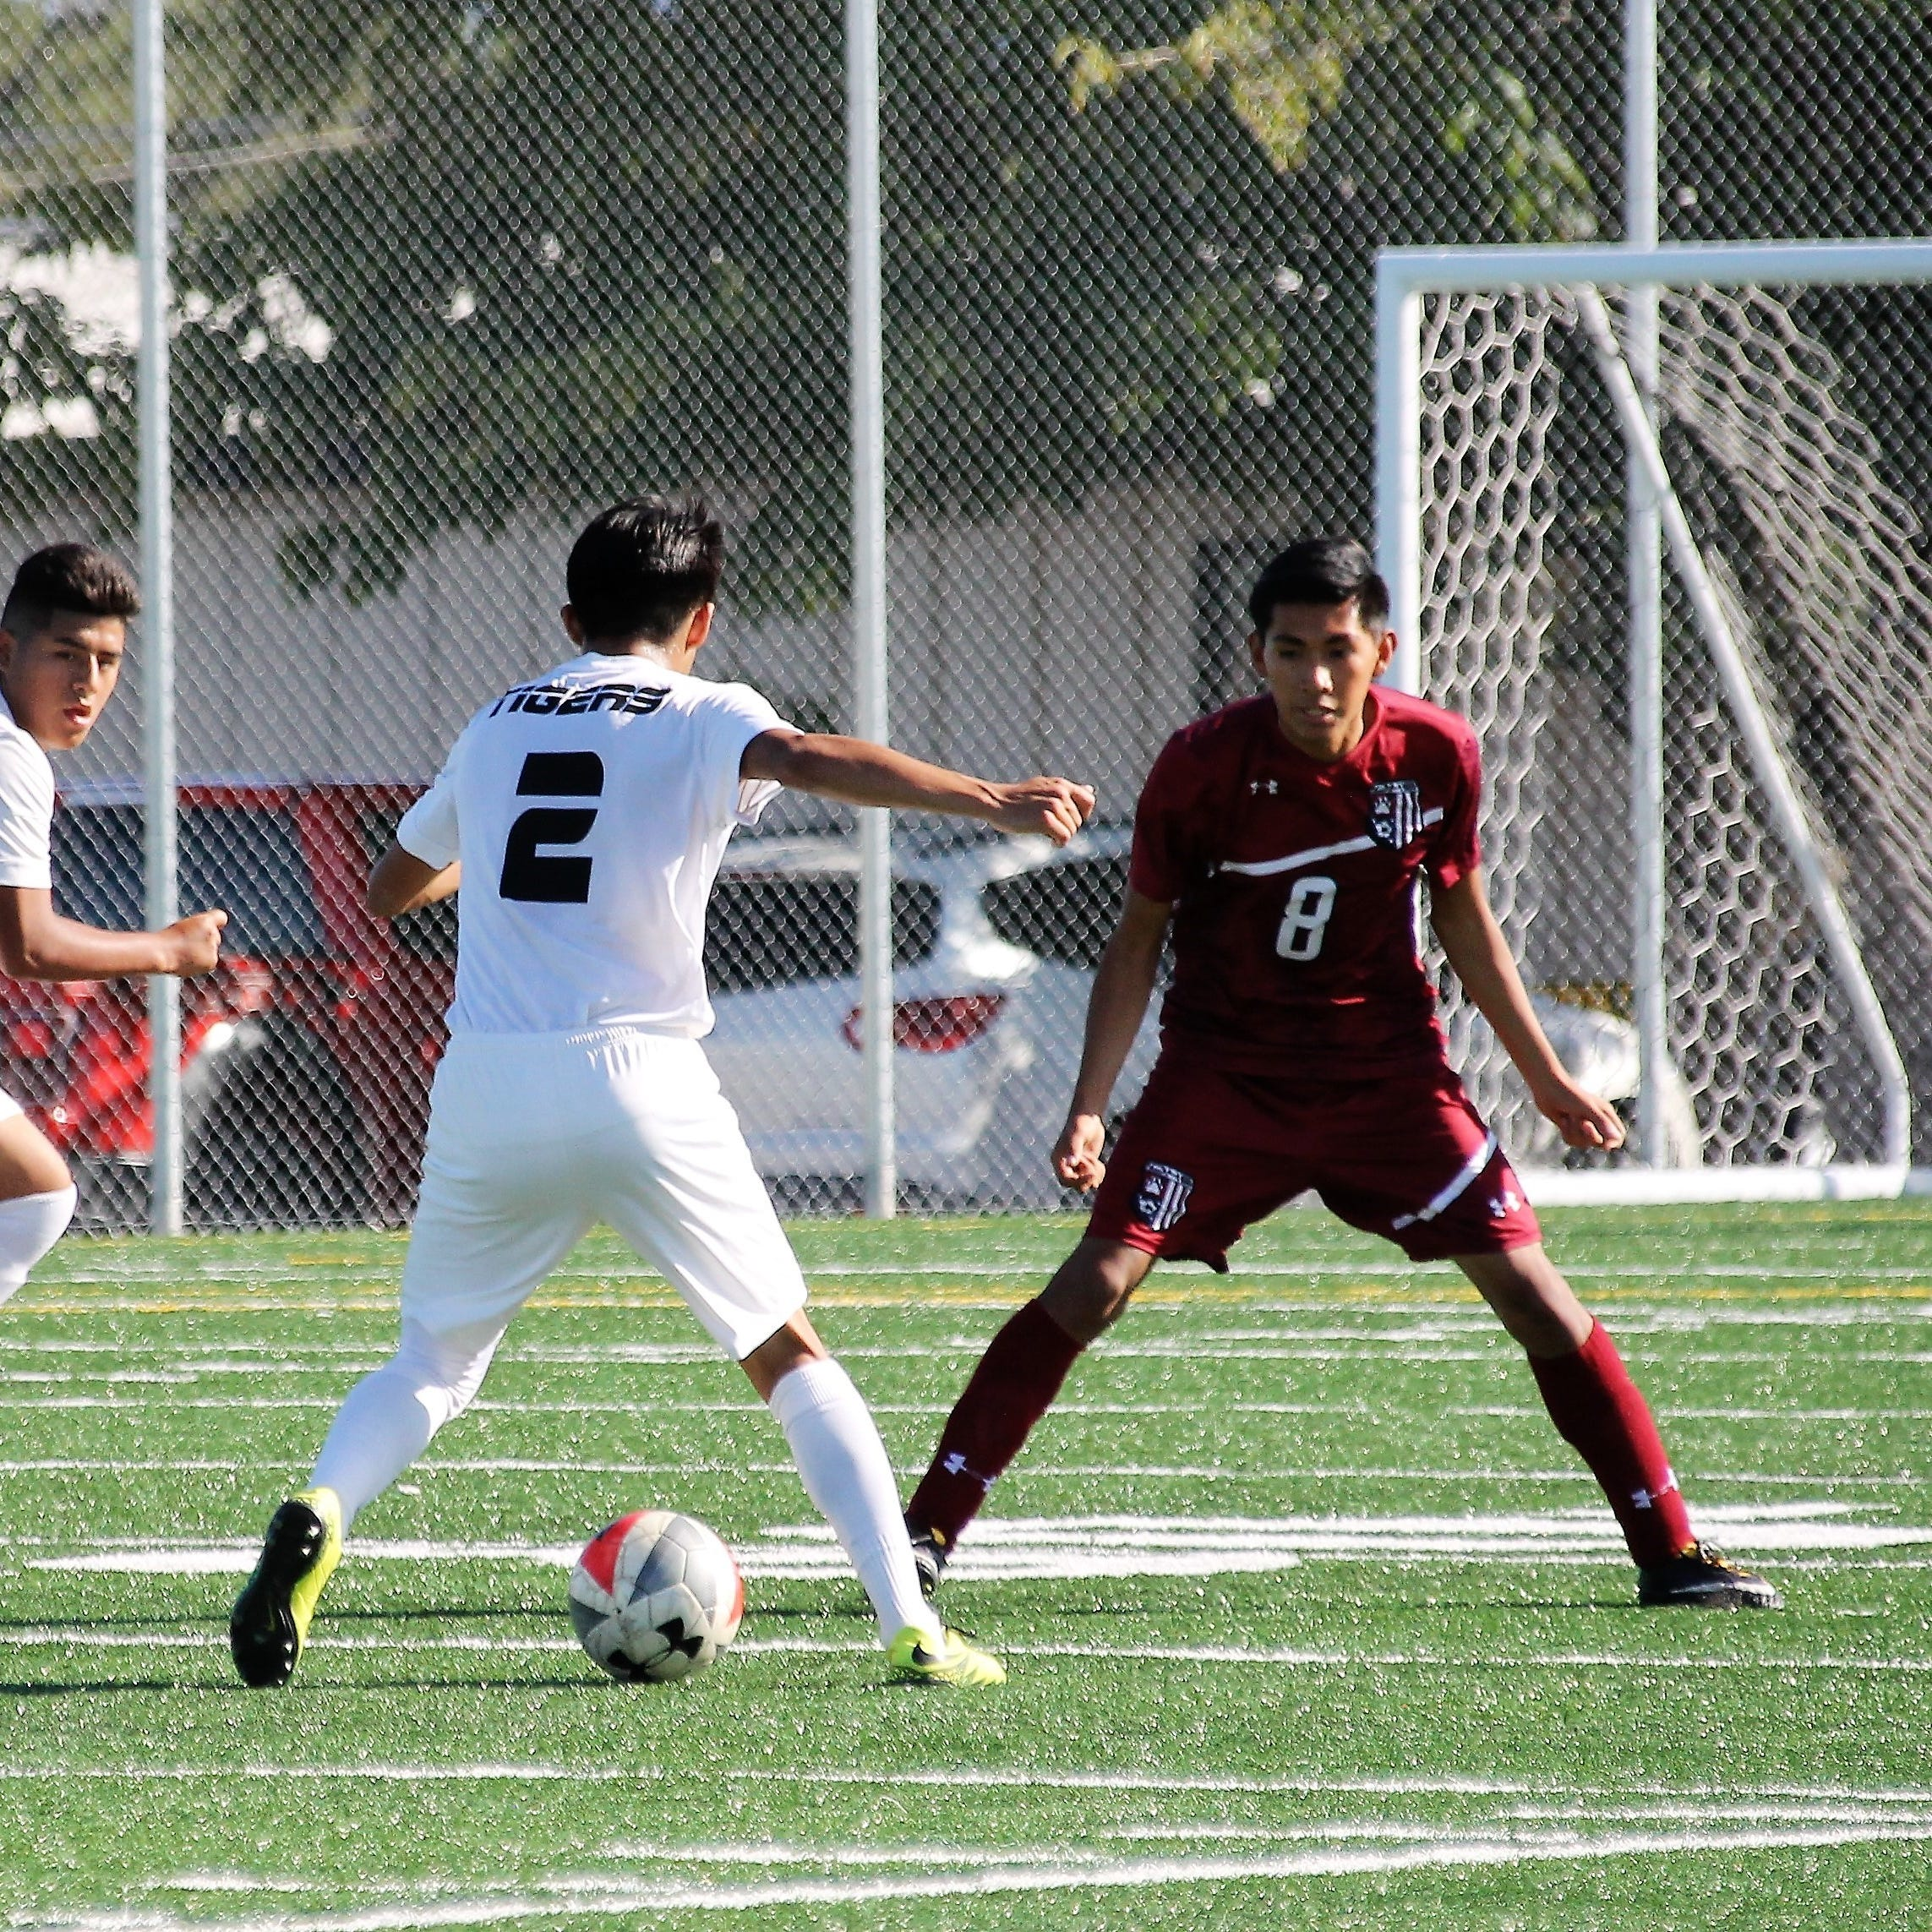 Tiger boys end regular soccer season on high note, head to playoffs